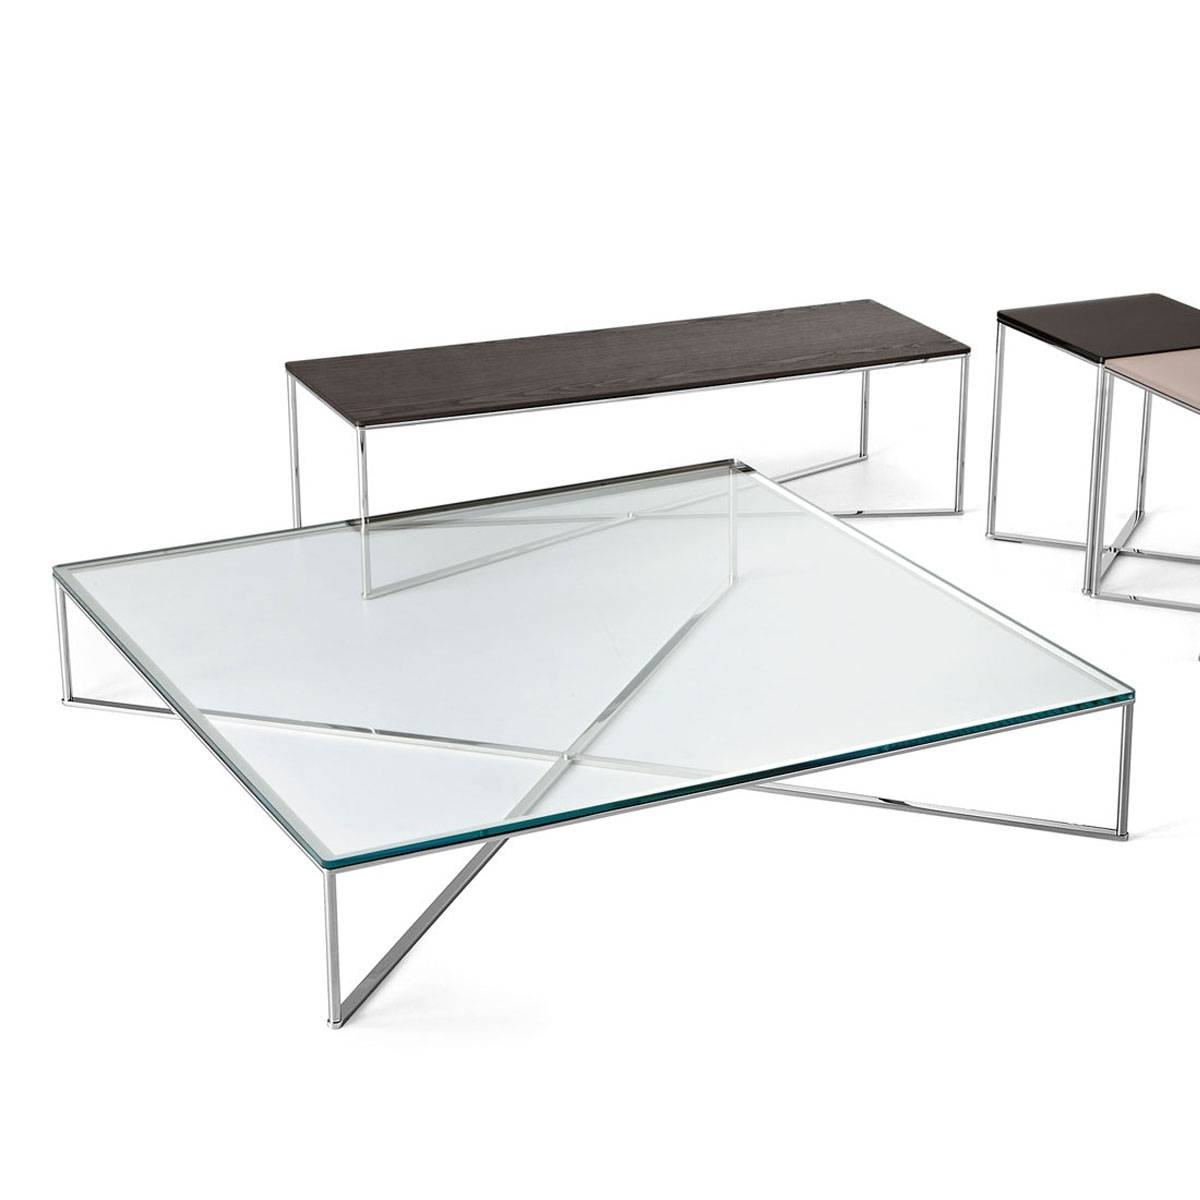 Coffee Table: Popular Metal And Glass Coffee Table Ideas Tempered with regard to Metal Glass Coffee Tables (Image 11 of 30)